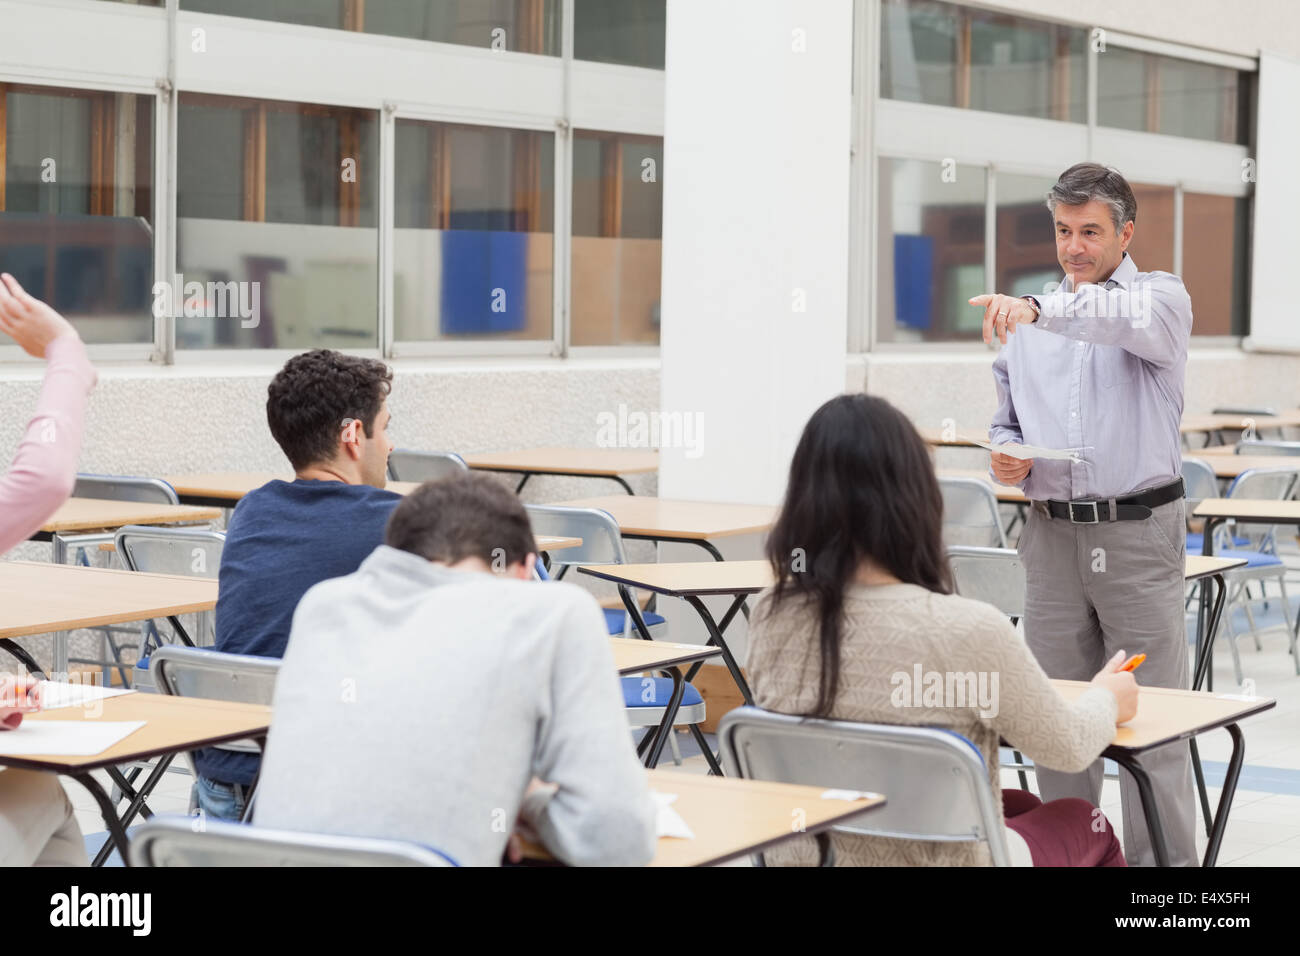 Teacher pointing at student asking question - Stock Image